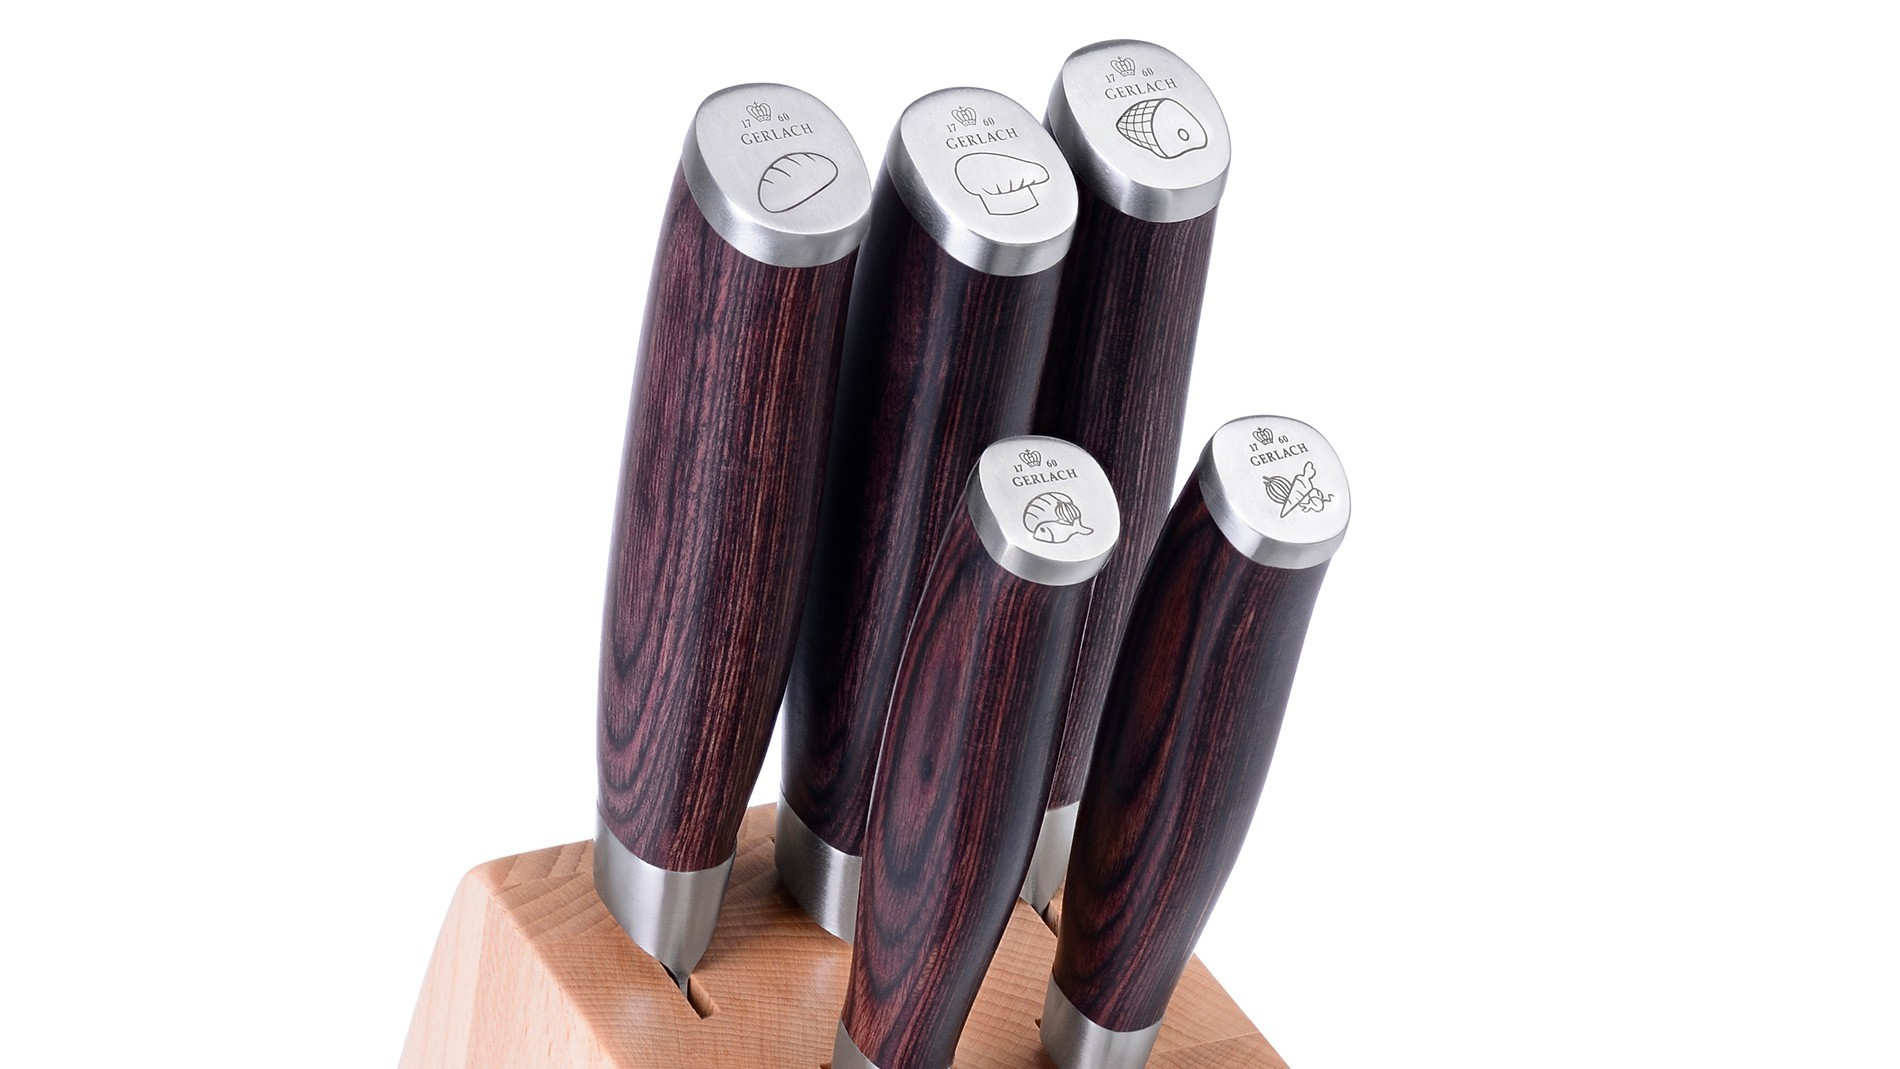 A set of DECO WOOD knives